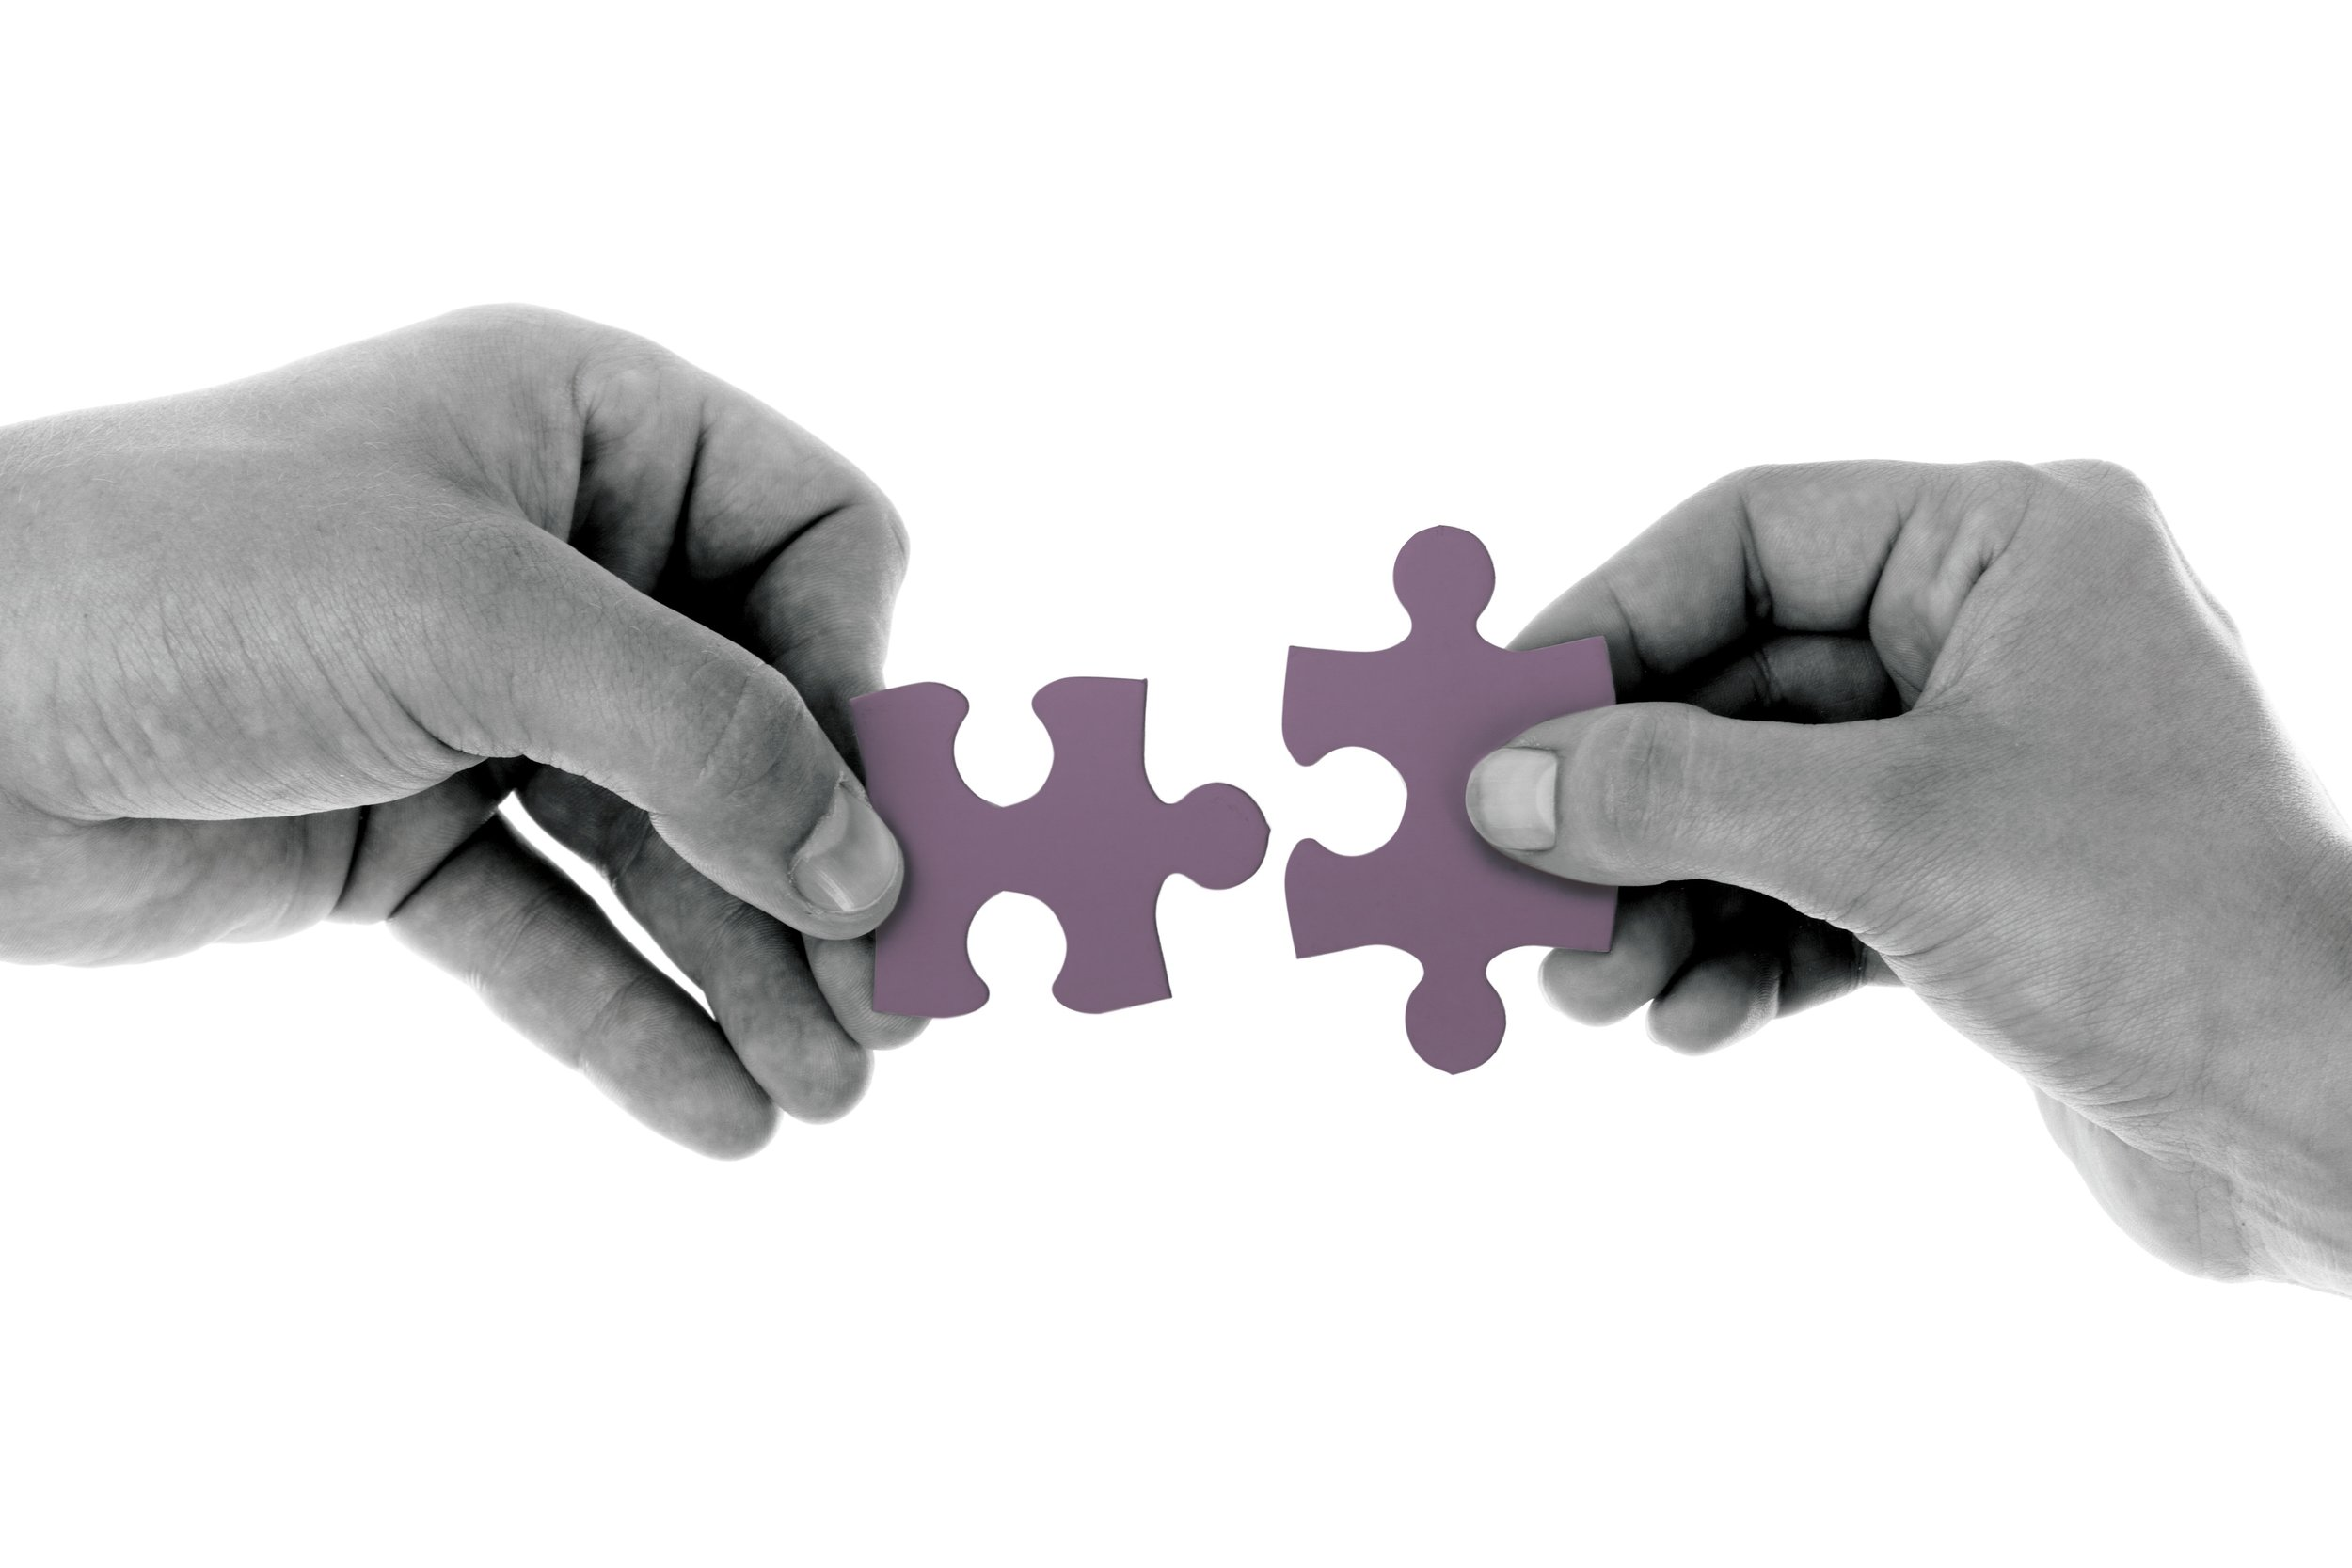 connect-hand-jigsaw-164531.jpg